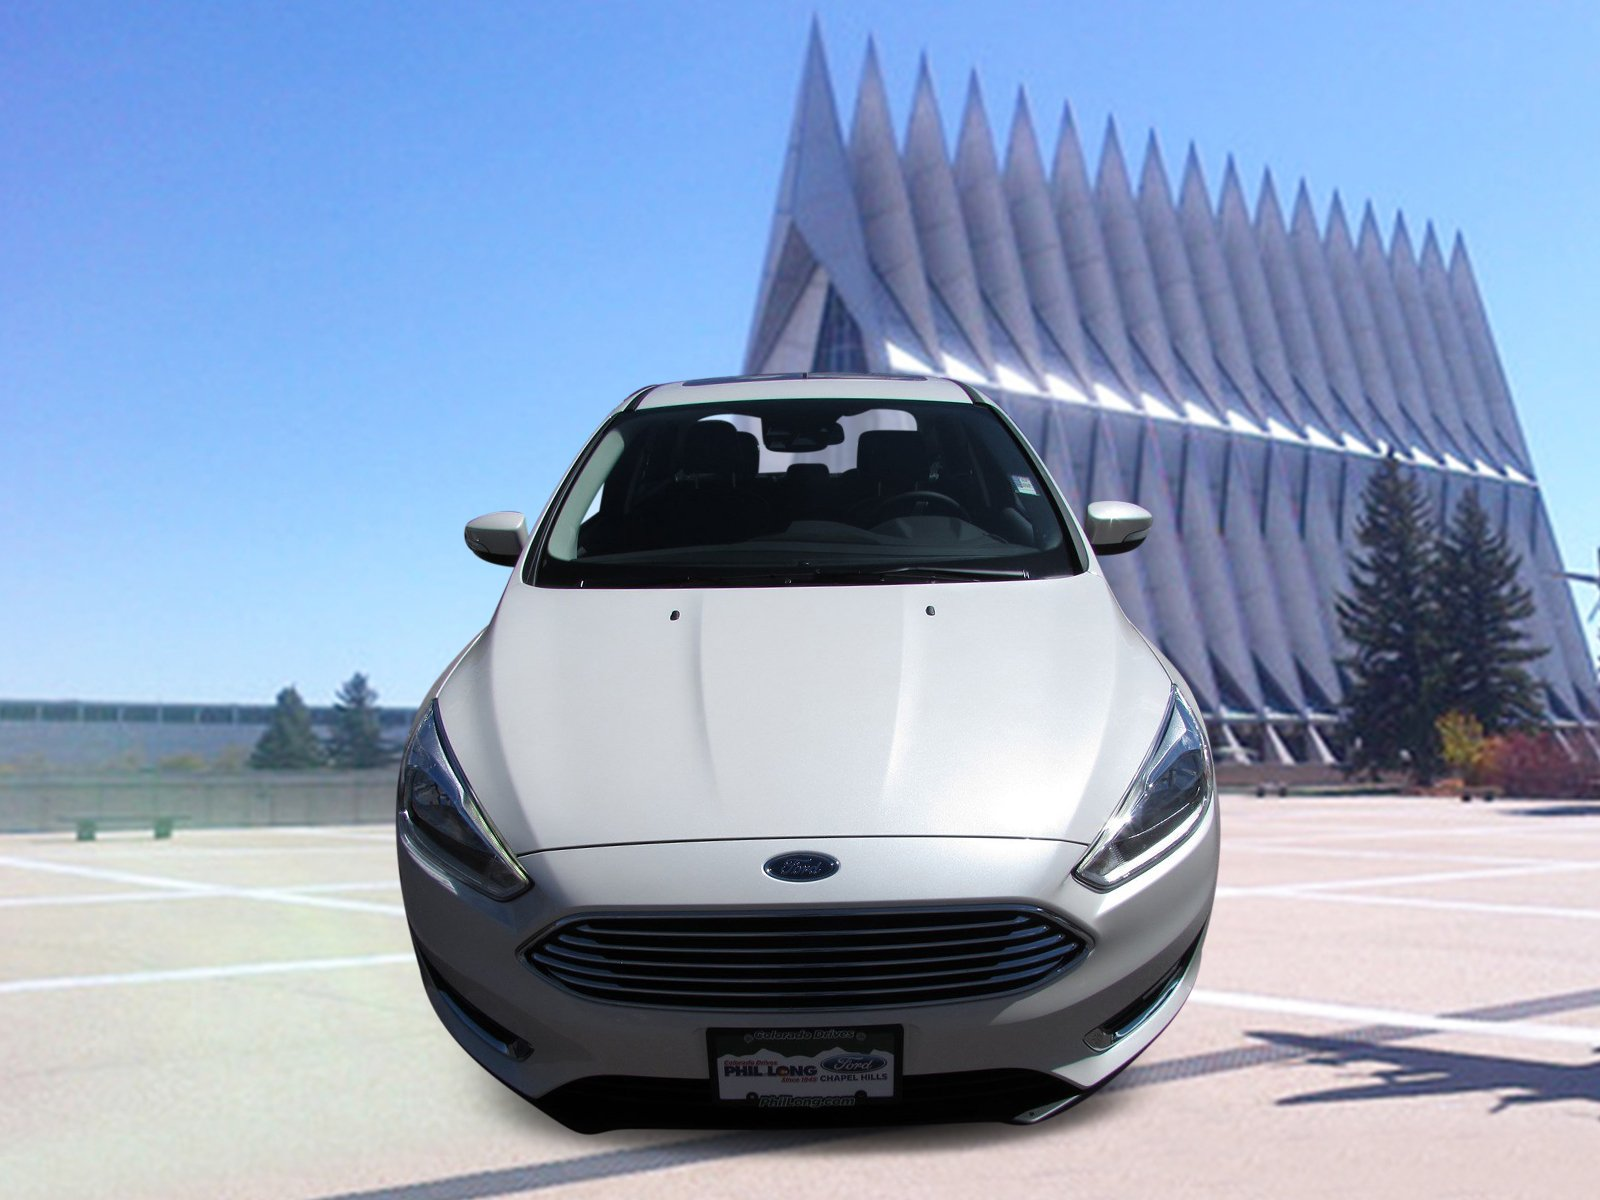 DYNAMIC_PREF_LABEL_INVENTORY_FEATURED_NEW_INVENTORY_FEATURED1_ALTATTRIBUTEBEFORE 2018 Ford Focus Titanium Sedan DYNAMIC_PREF_LABEL_INVENTORY_FEATURED_NEW_INVENTORY_FEATURED1_ALTATTRIBUTEAFTER